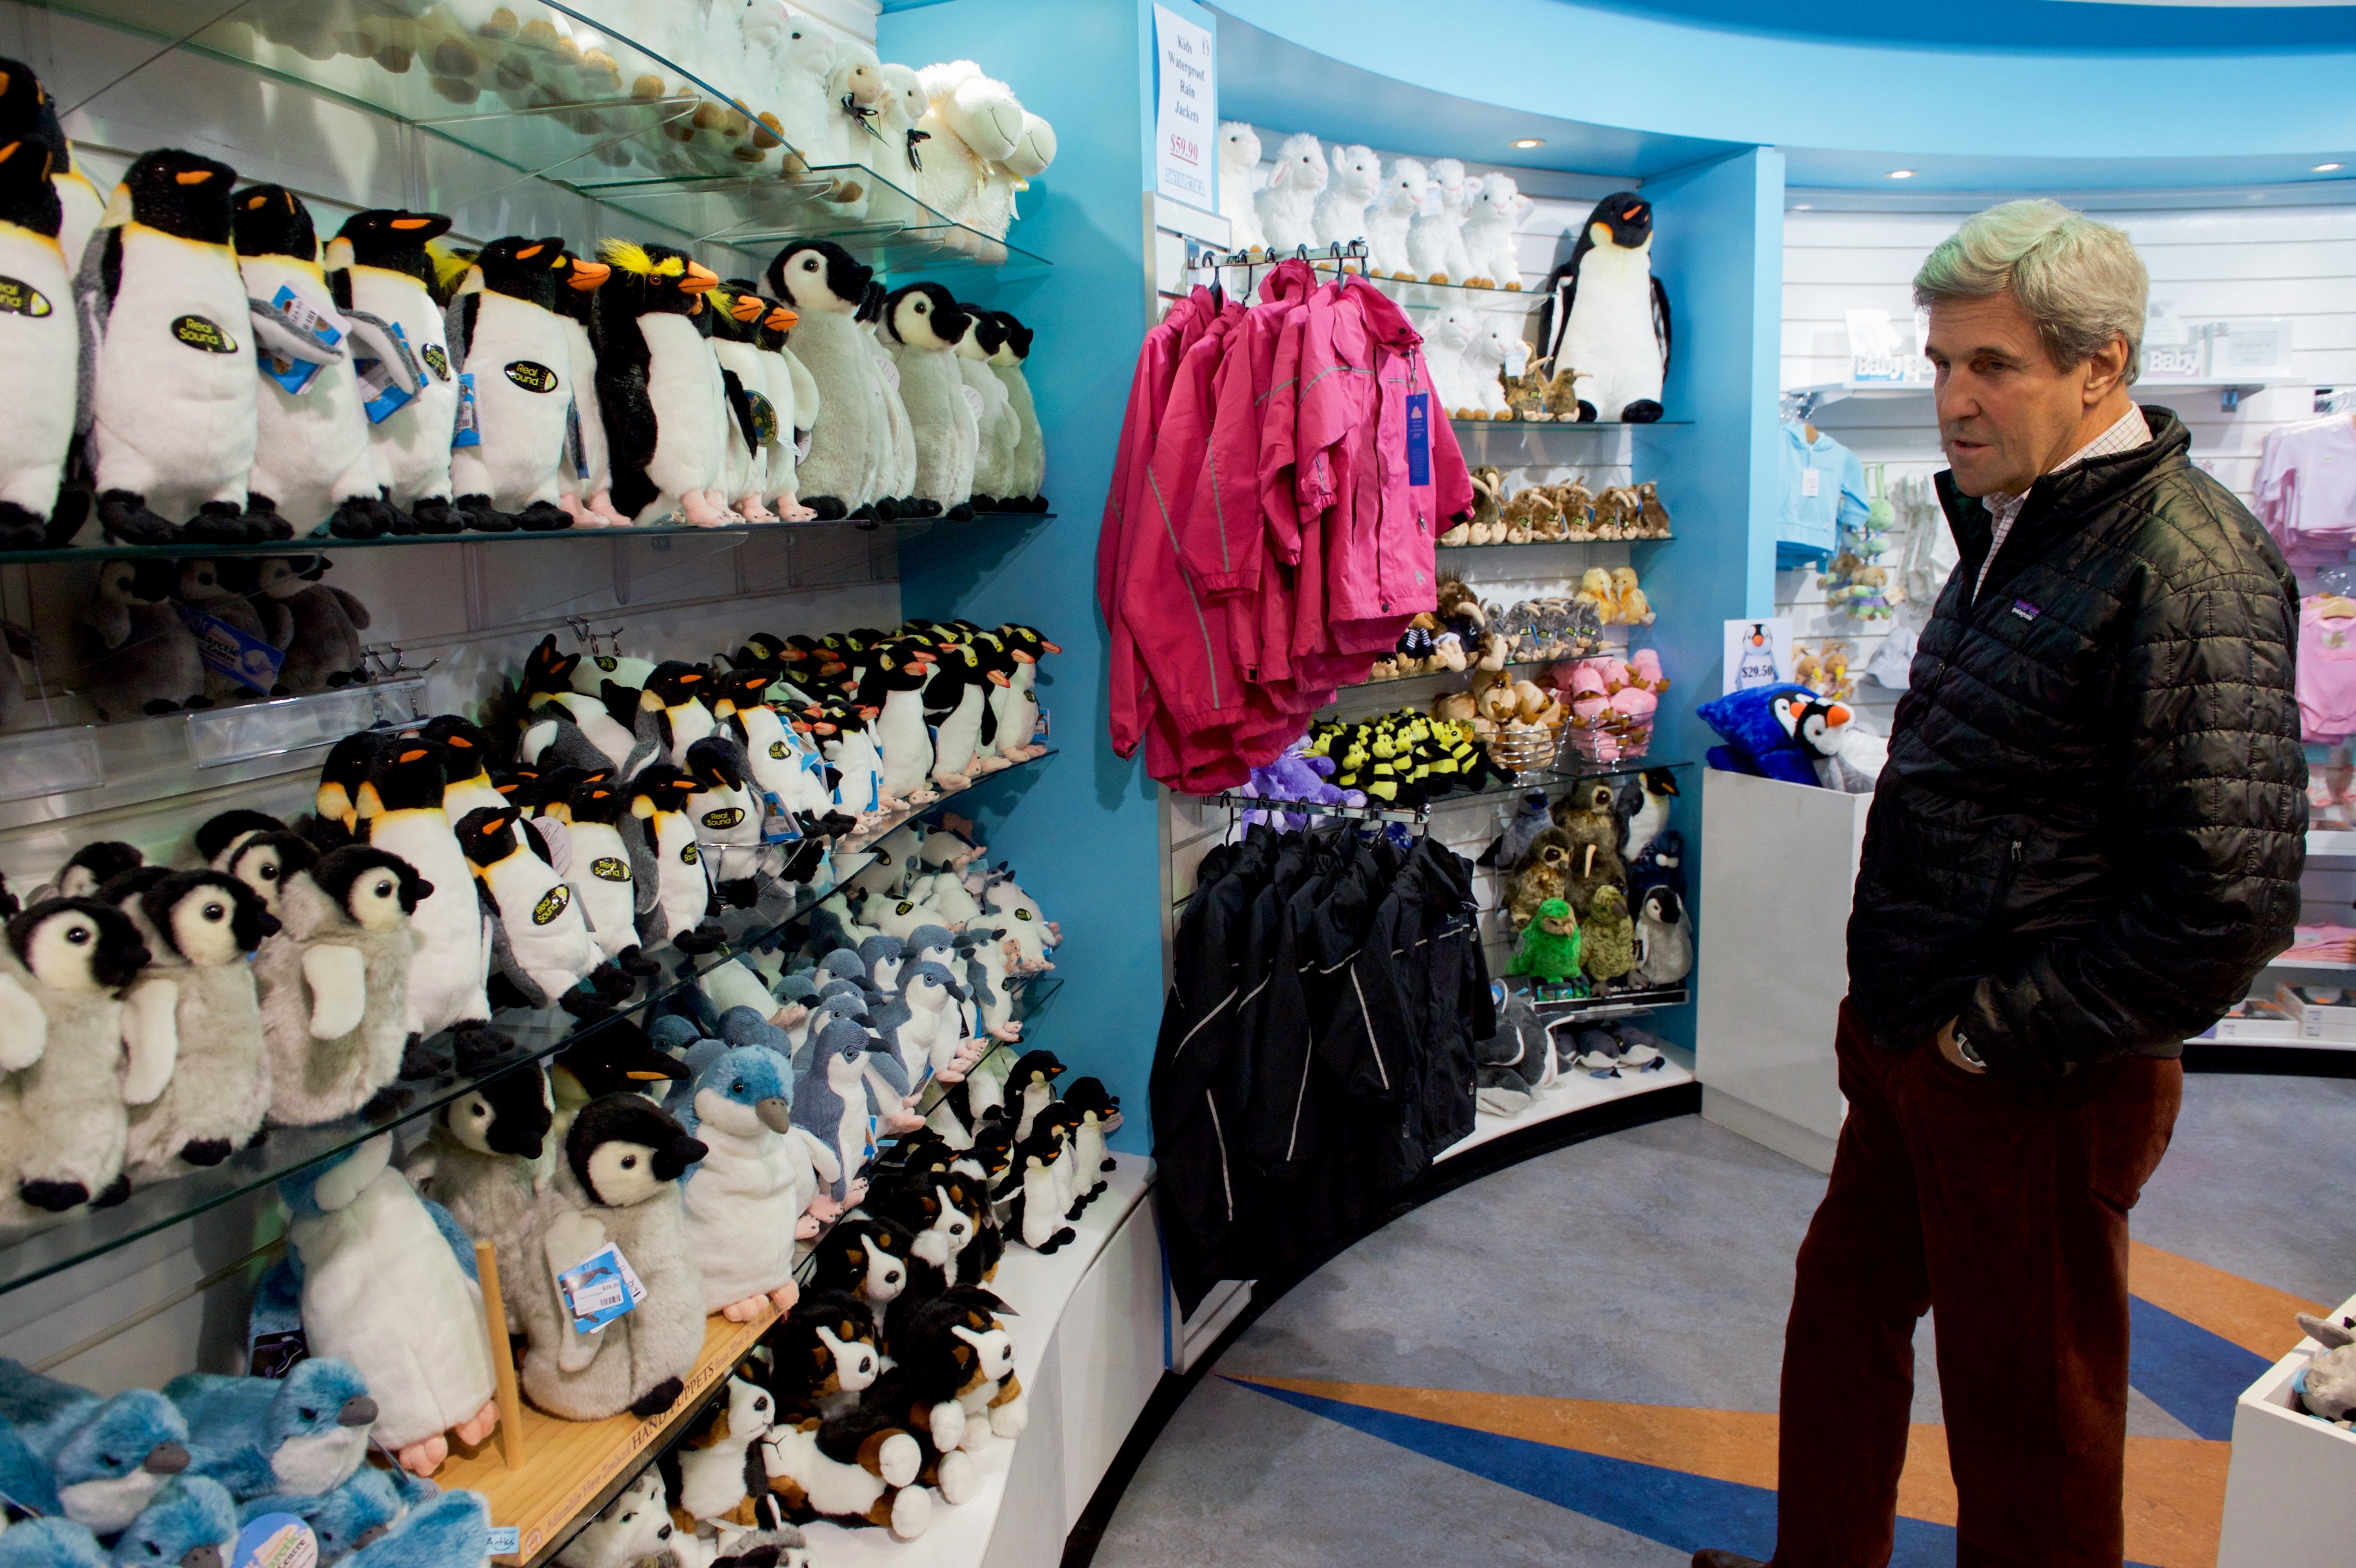 File:Secretary Kerry Looks Over Toy Penguins in a Gift Shop at the ...